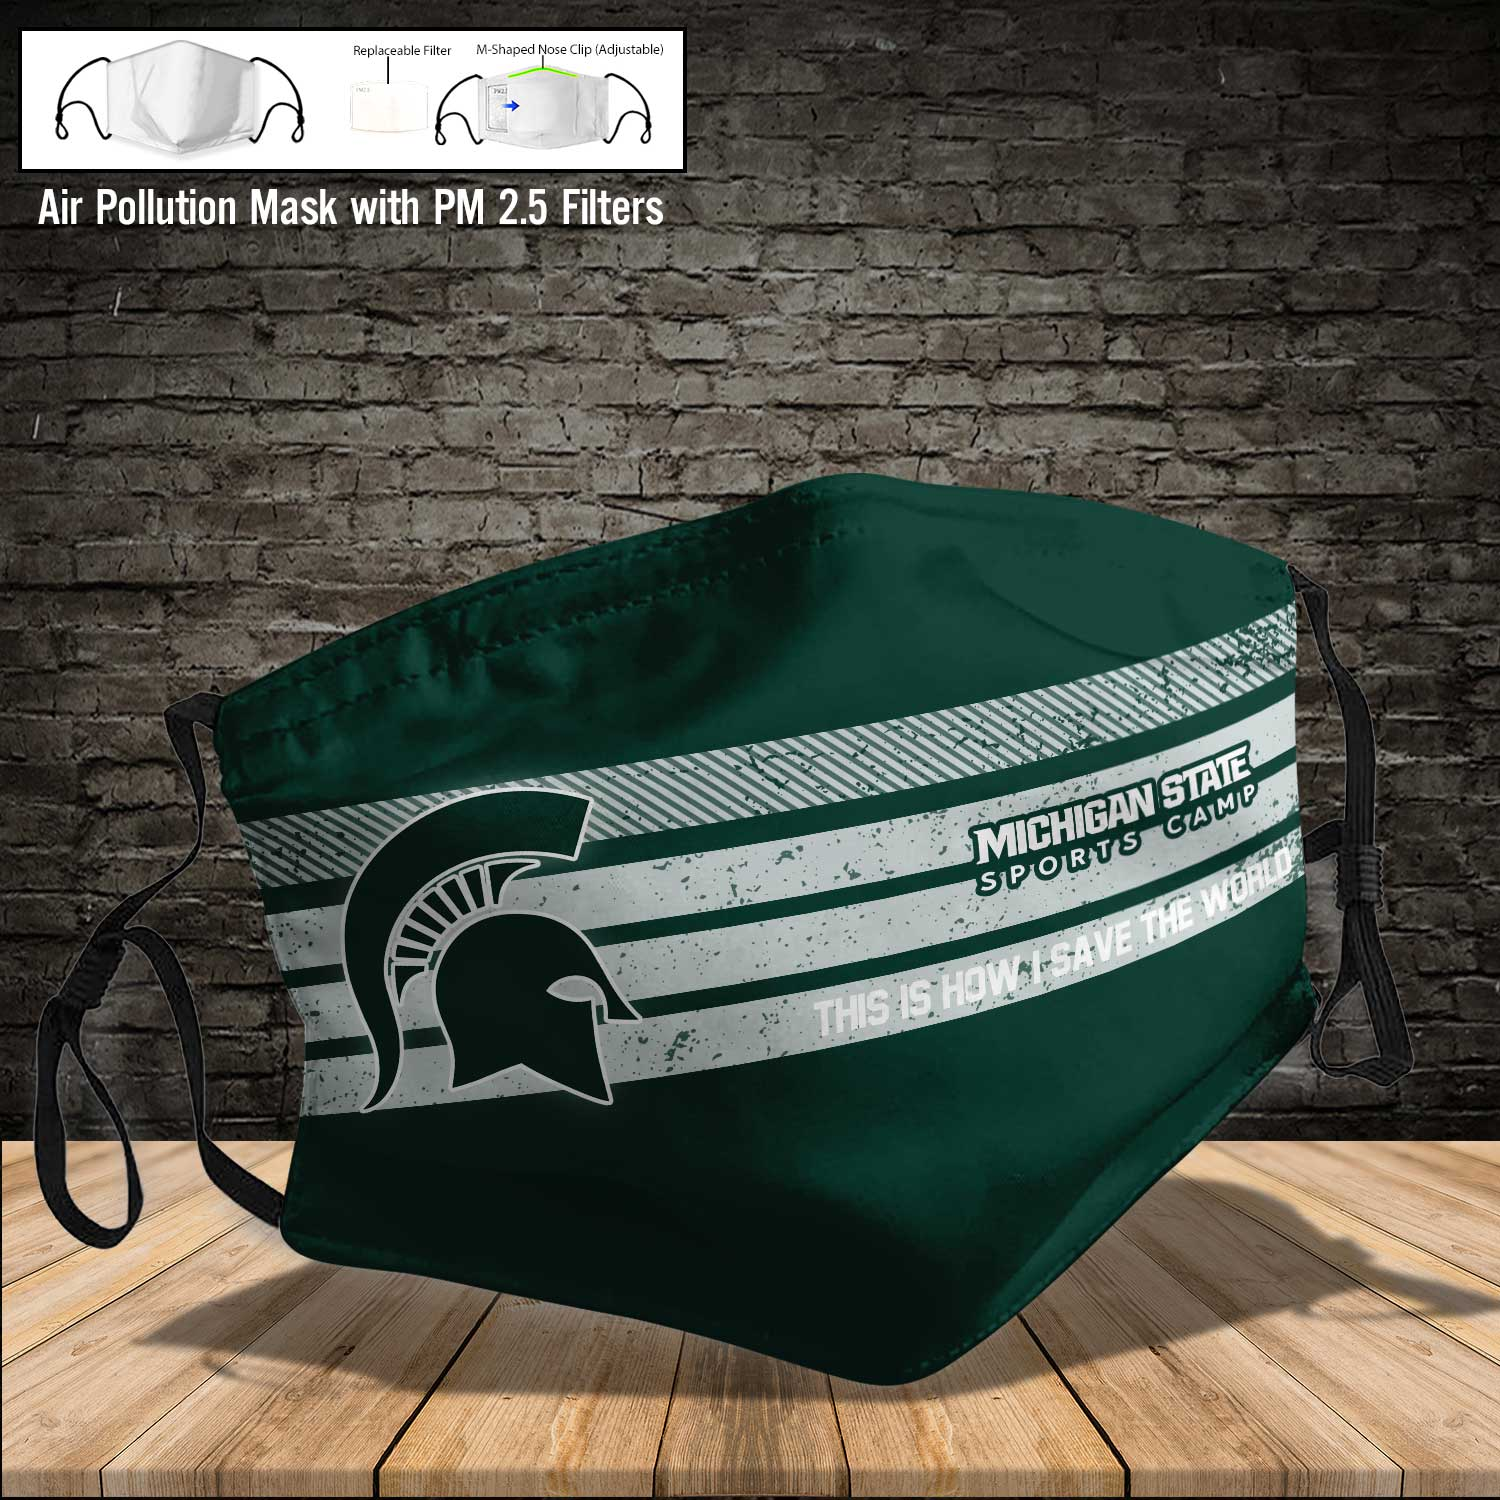 Michigan state spartans this is how i save the world face mask 4